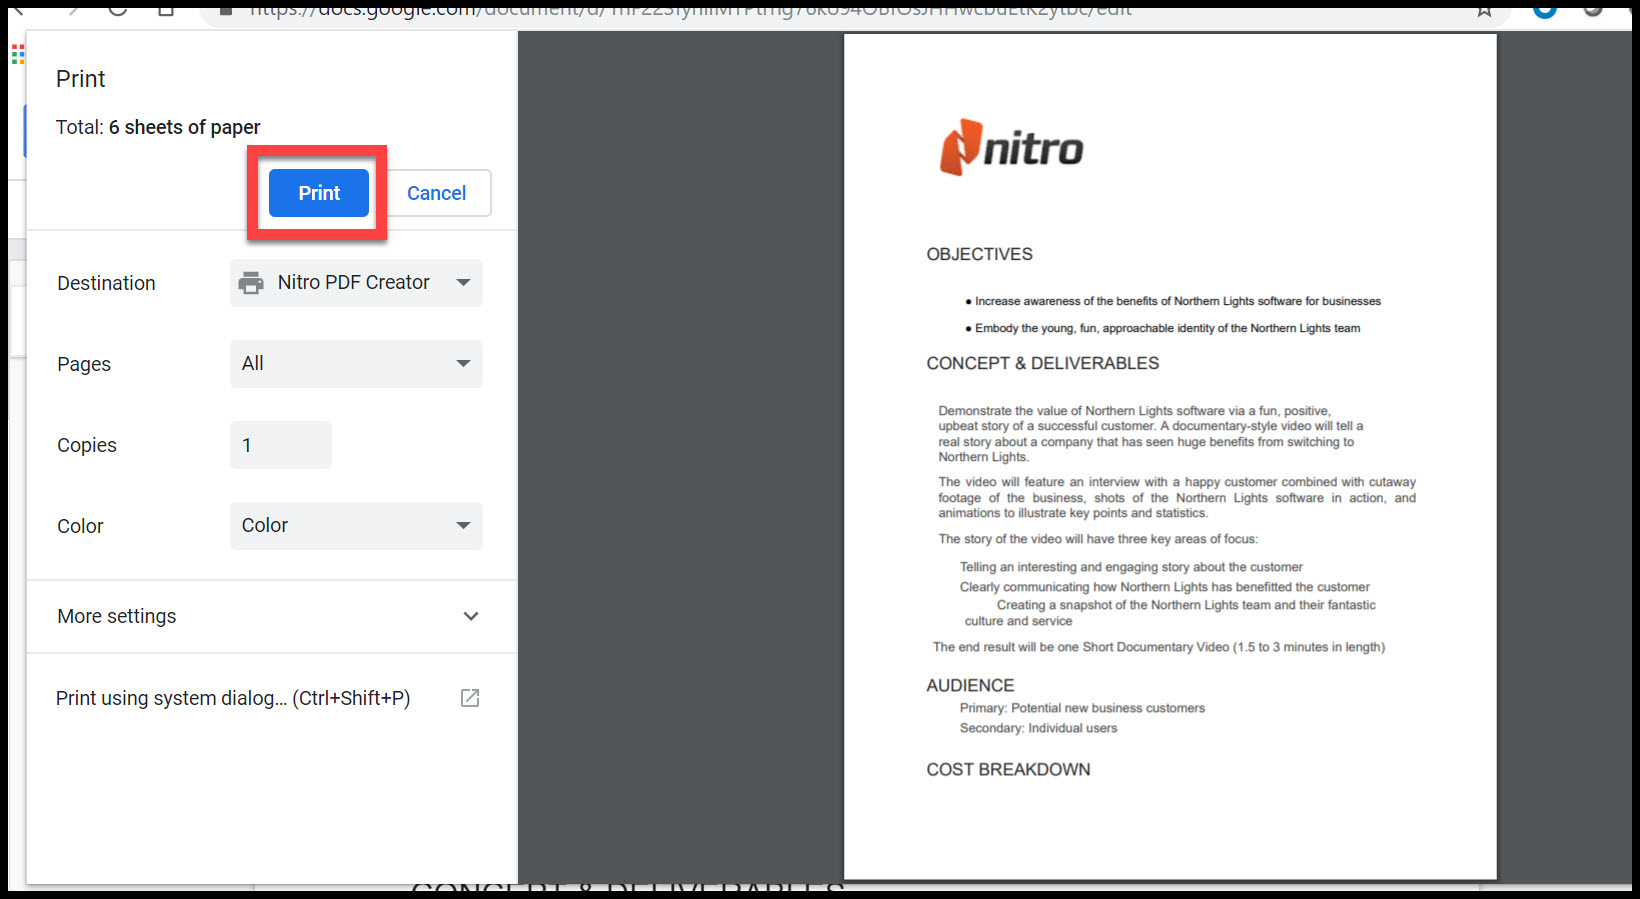 Print to PDF You can create a PDF document from virtually any application that allows you to print files. Nitro PDF Creator is included in Nitro Pro, and is a virtual printer that enables you to create a PDF file from any application capable of printing. Instead of ...